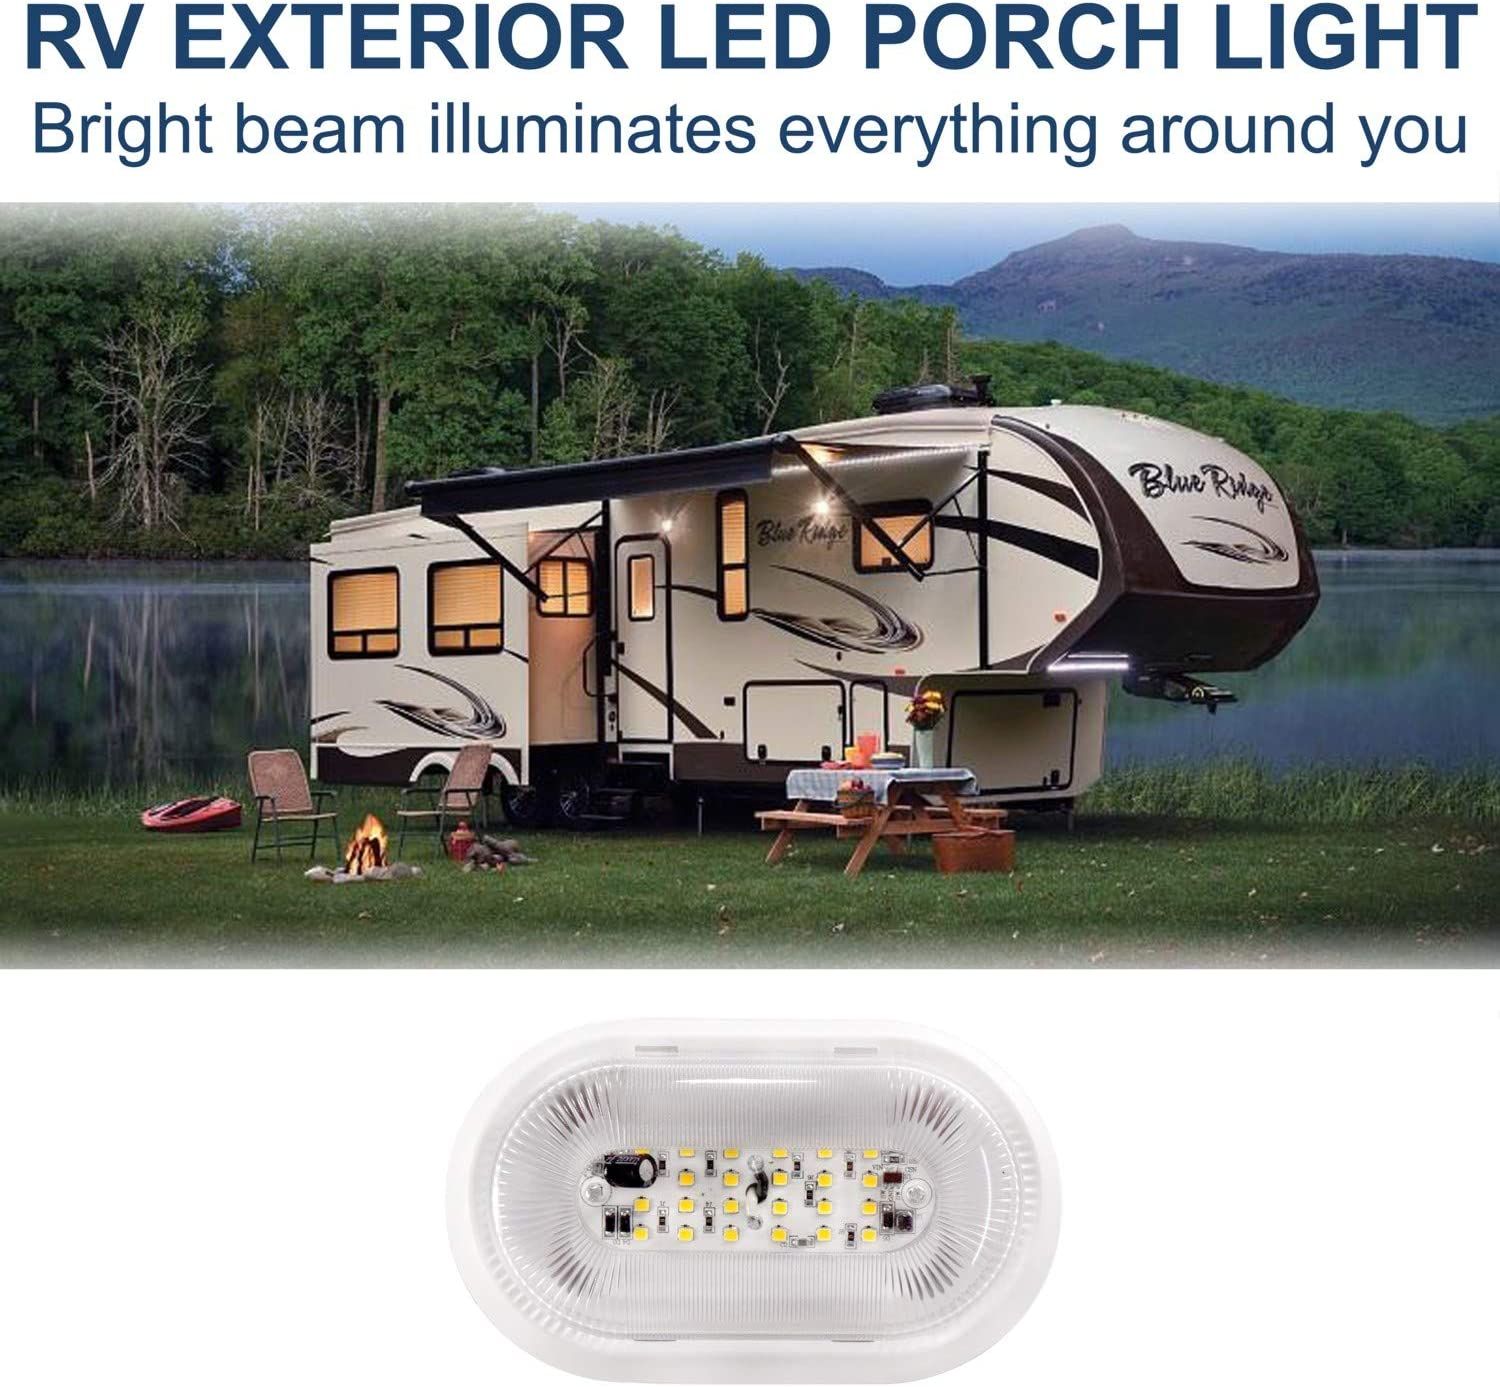 HQRP RV LED Porch 12V Lumen Exterior Outdoor Utility Light Replacement Trailer Camper Motorhome Lighting Fixture Plus HQRP Coaster